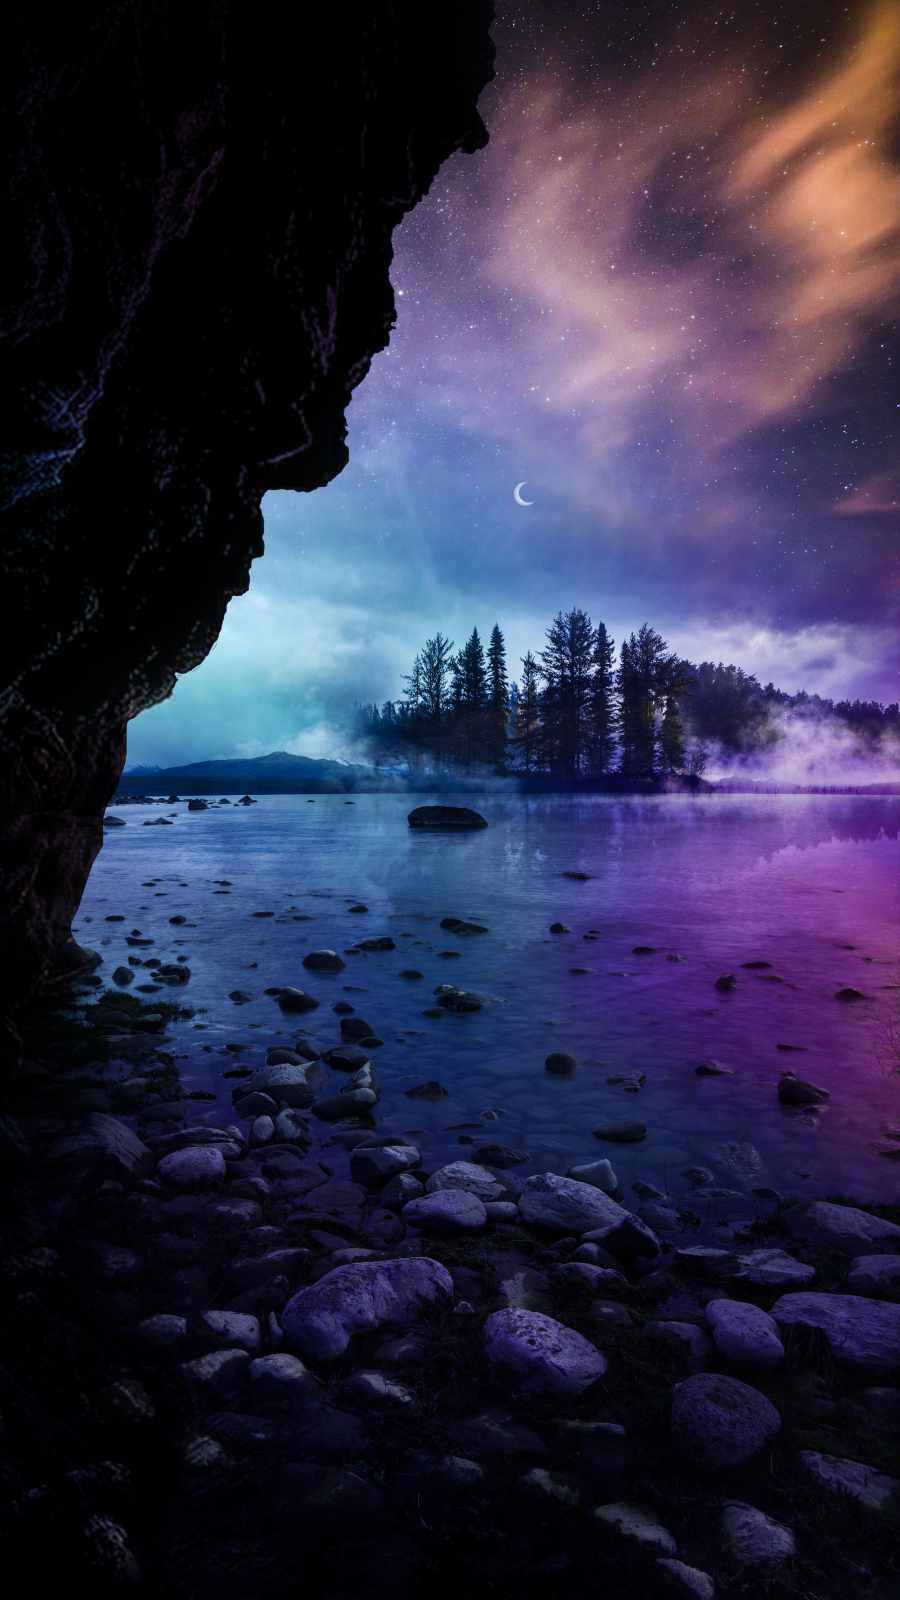 Night Lake Sky View - iPhone Wallpapers